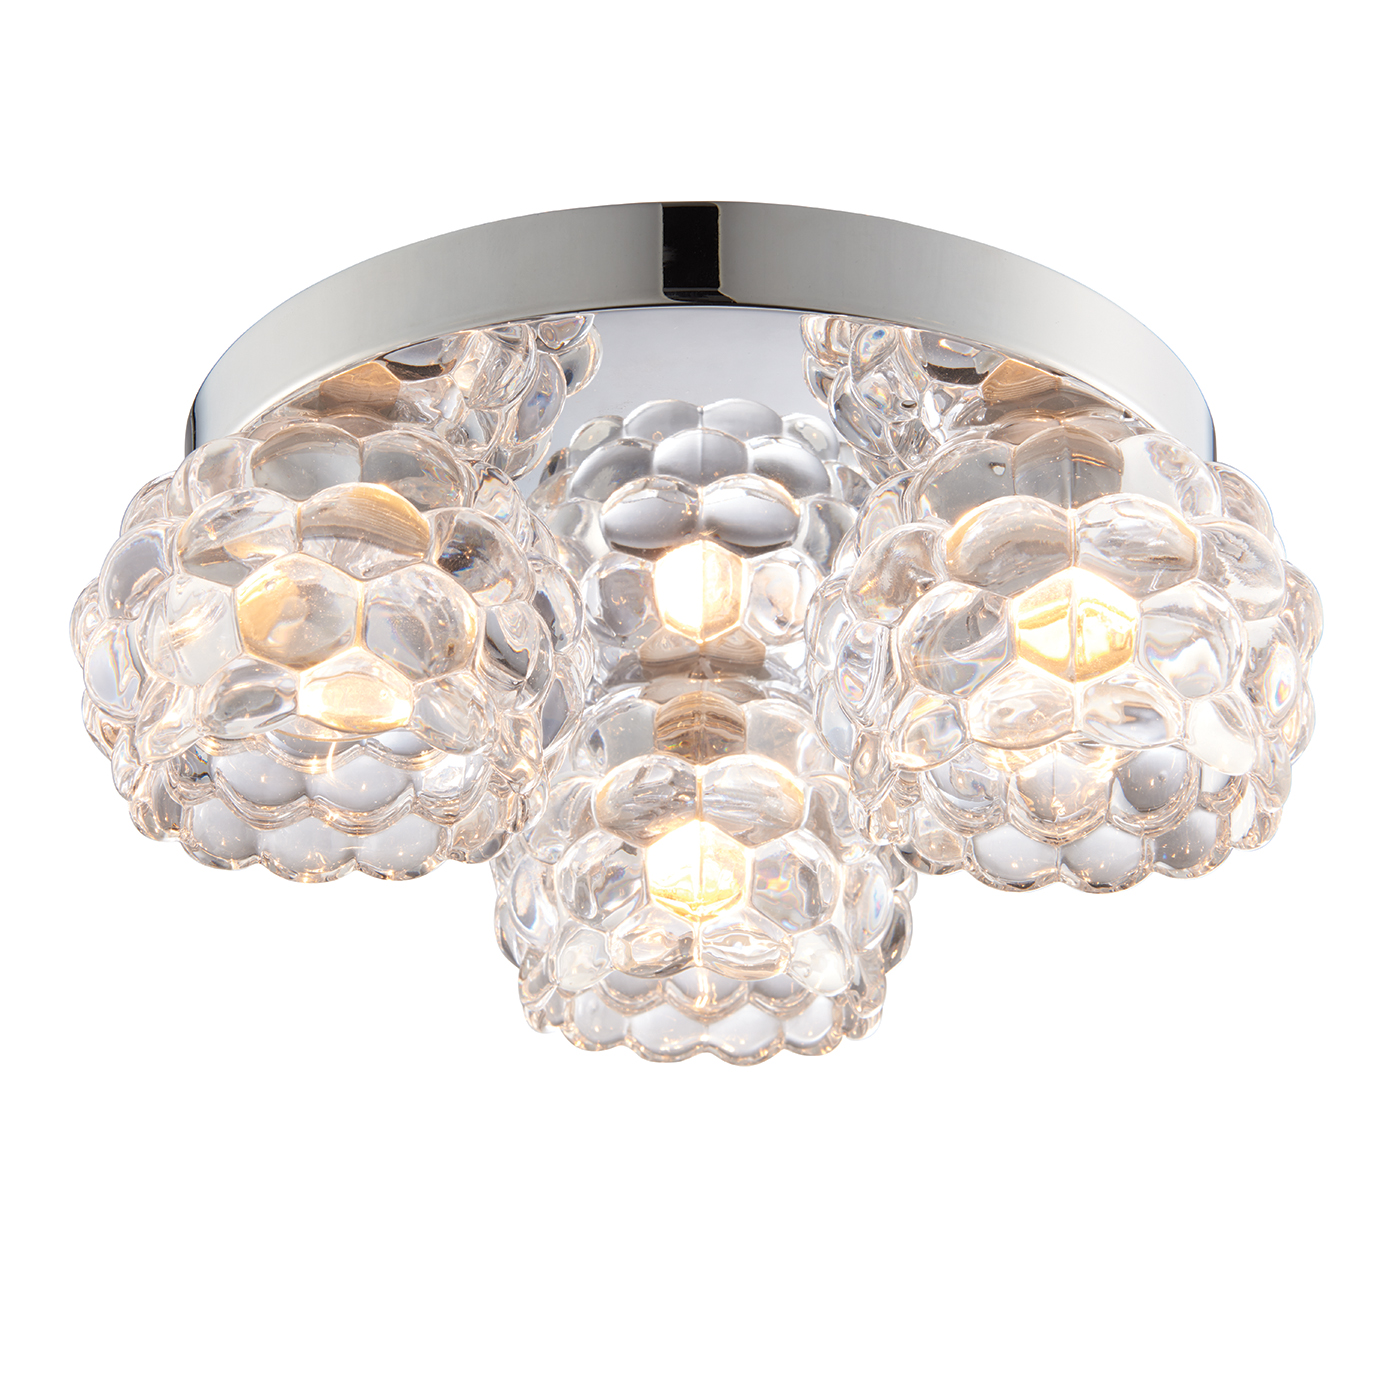 Endon Lawcross 3lt flush bathroom ceiling light IP44 18W chrome & rippled glass